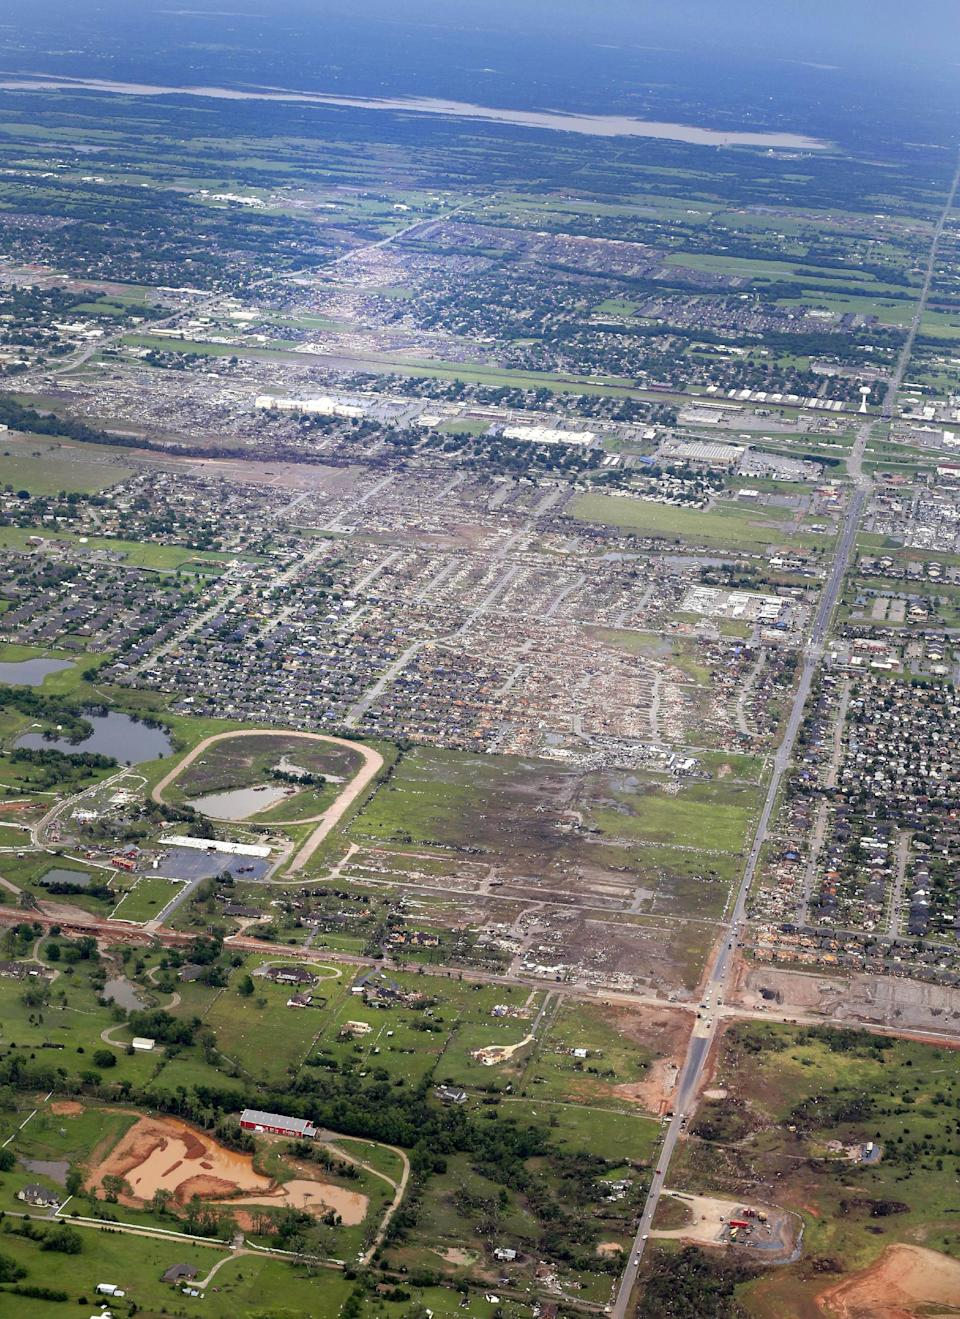 This Tuesday, May 21, 2013 aerial photo shows, from bottom to top, the path Monday's tornado took through Moore, Okla. The huge tornado roared through the Oklahoma City suburb Monday, flattening entire neighborhoods and destroying an elementary school with a direct blow as children and teachers huddled against winds. (AP Photo/Kim Johnson Flodin)